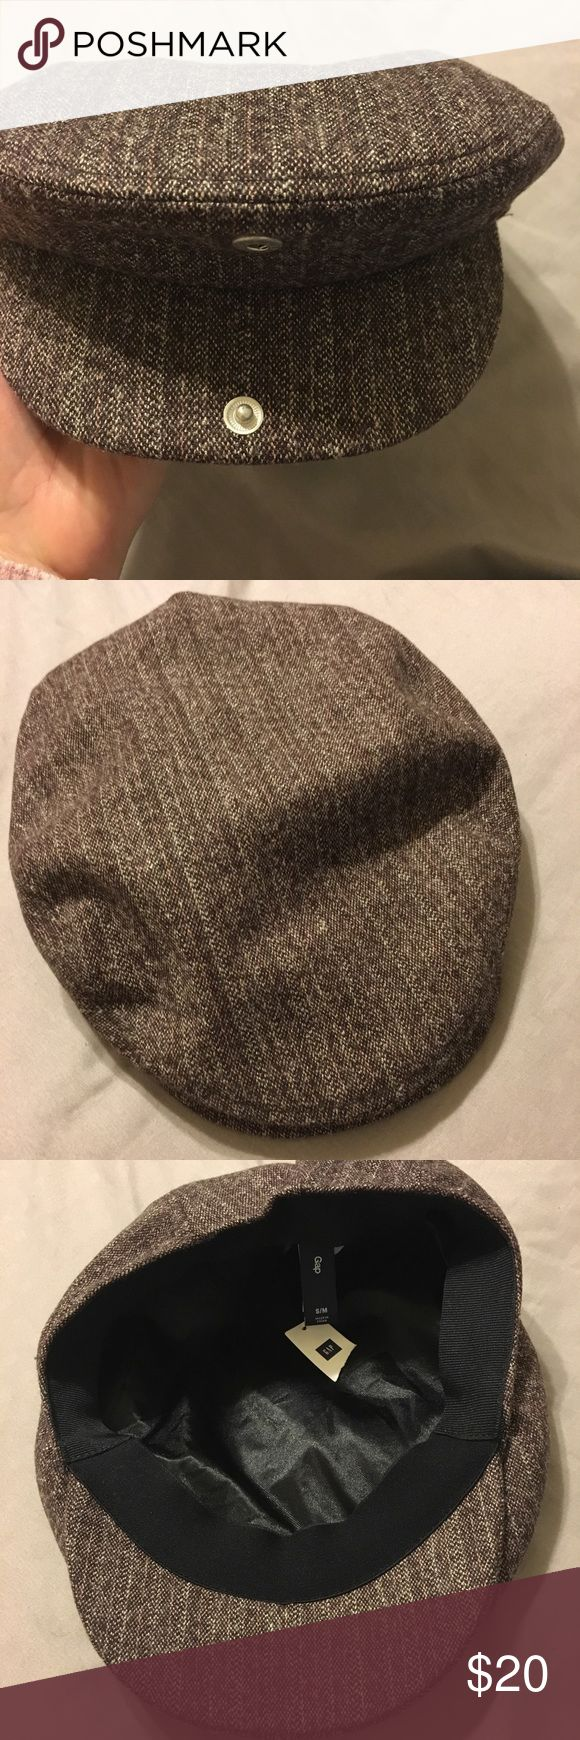 🌟🌟Gap Mens dressy hat 🎩 🌟🌟 GAP men's hat brand new with tag, size S/M GAP Accessories Hats